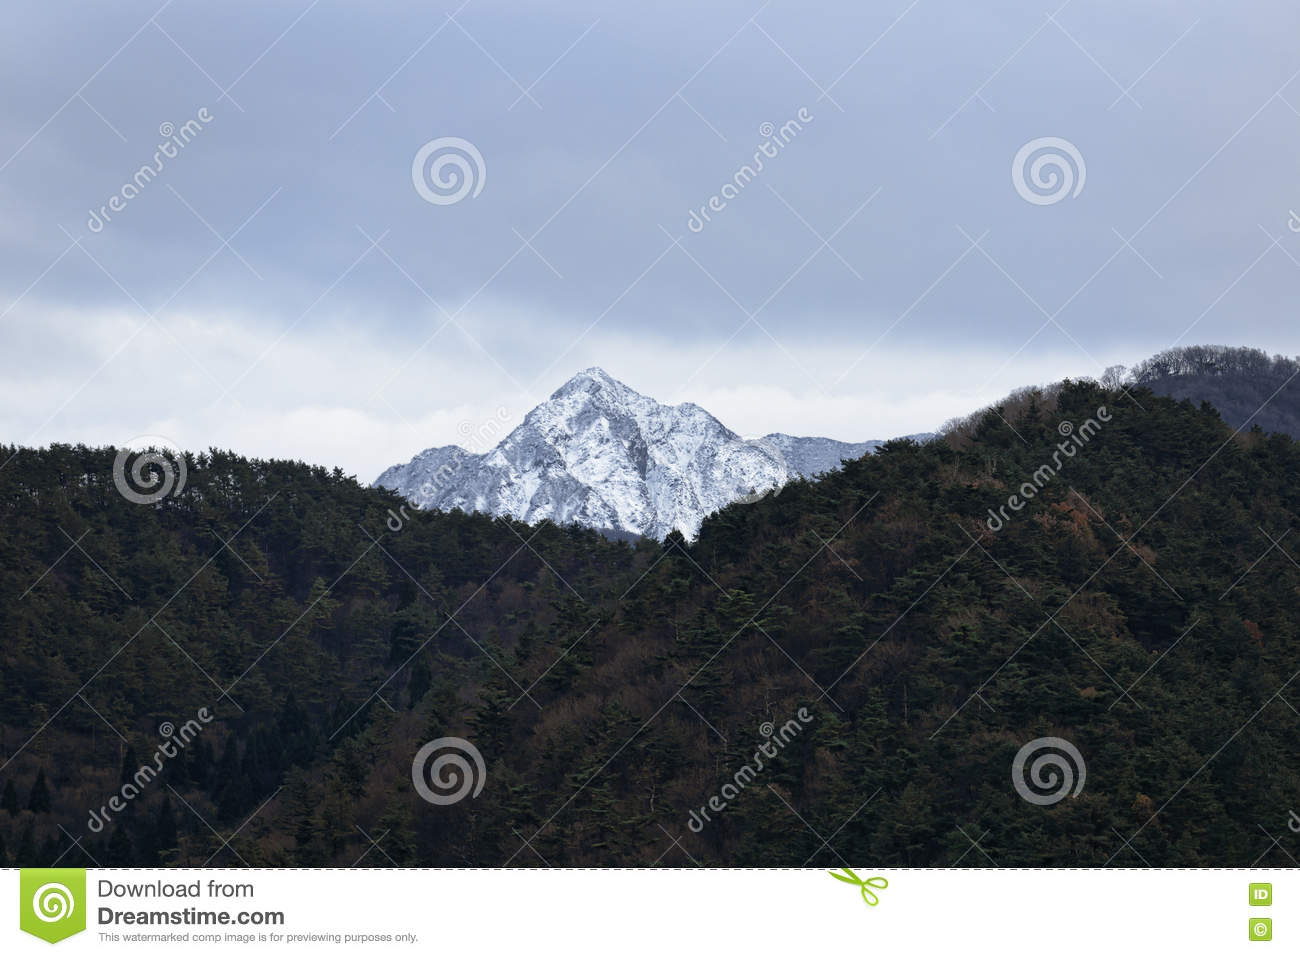 Mountain with the snow